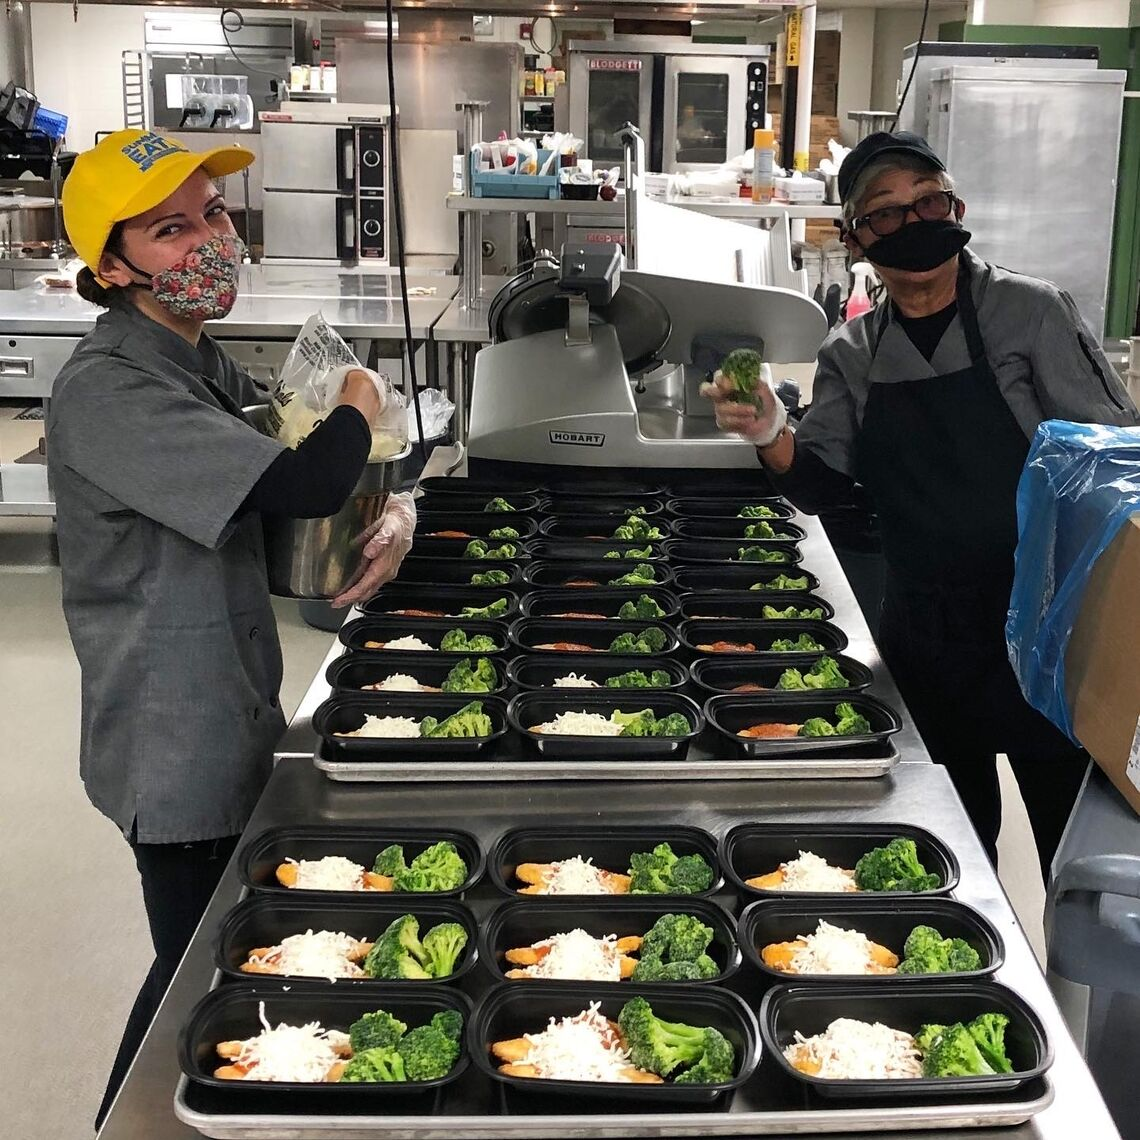 Two school nutrition professionals working hard to prepare school meals for kids through pandemic